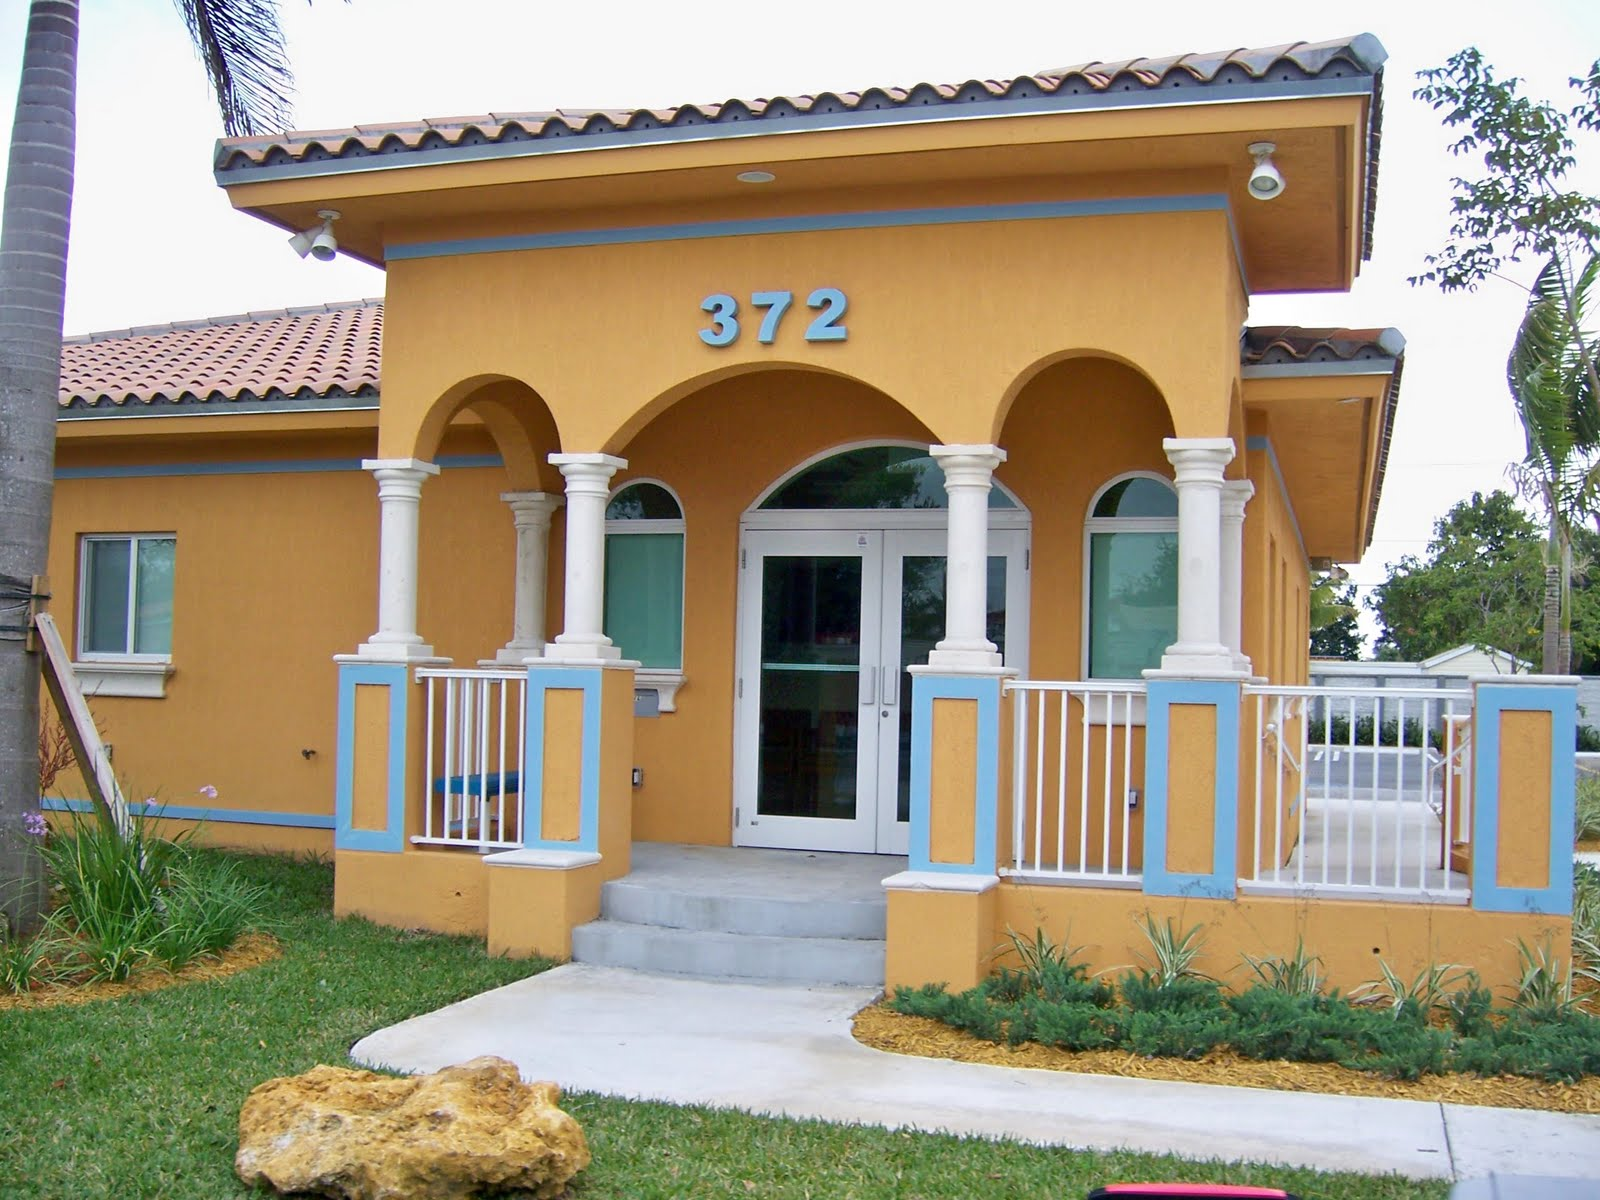 Sweet Home Hialeah Hialeah Colors And South Florida Style